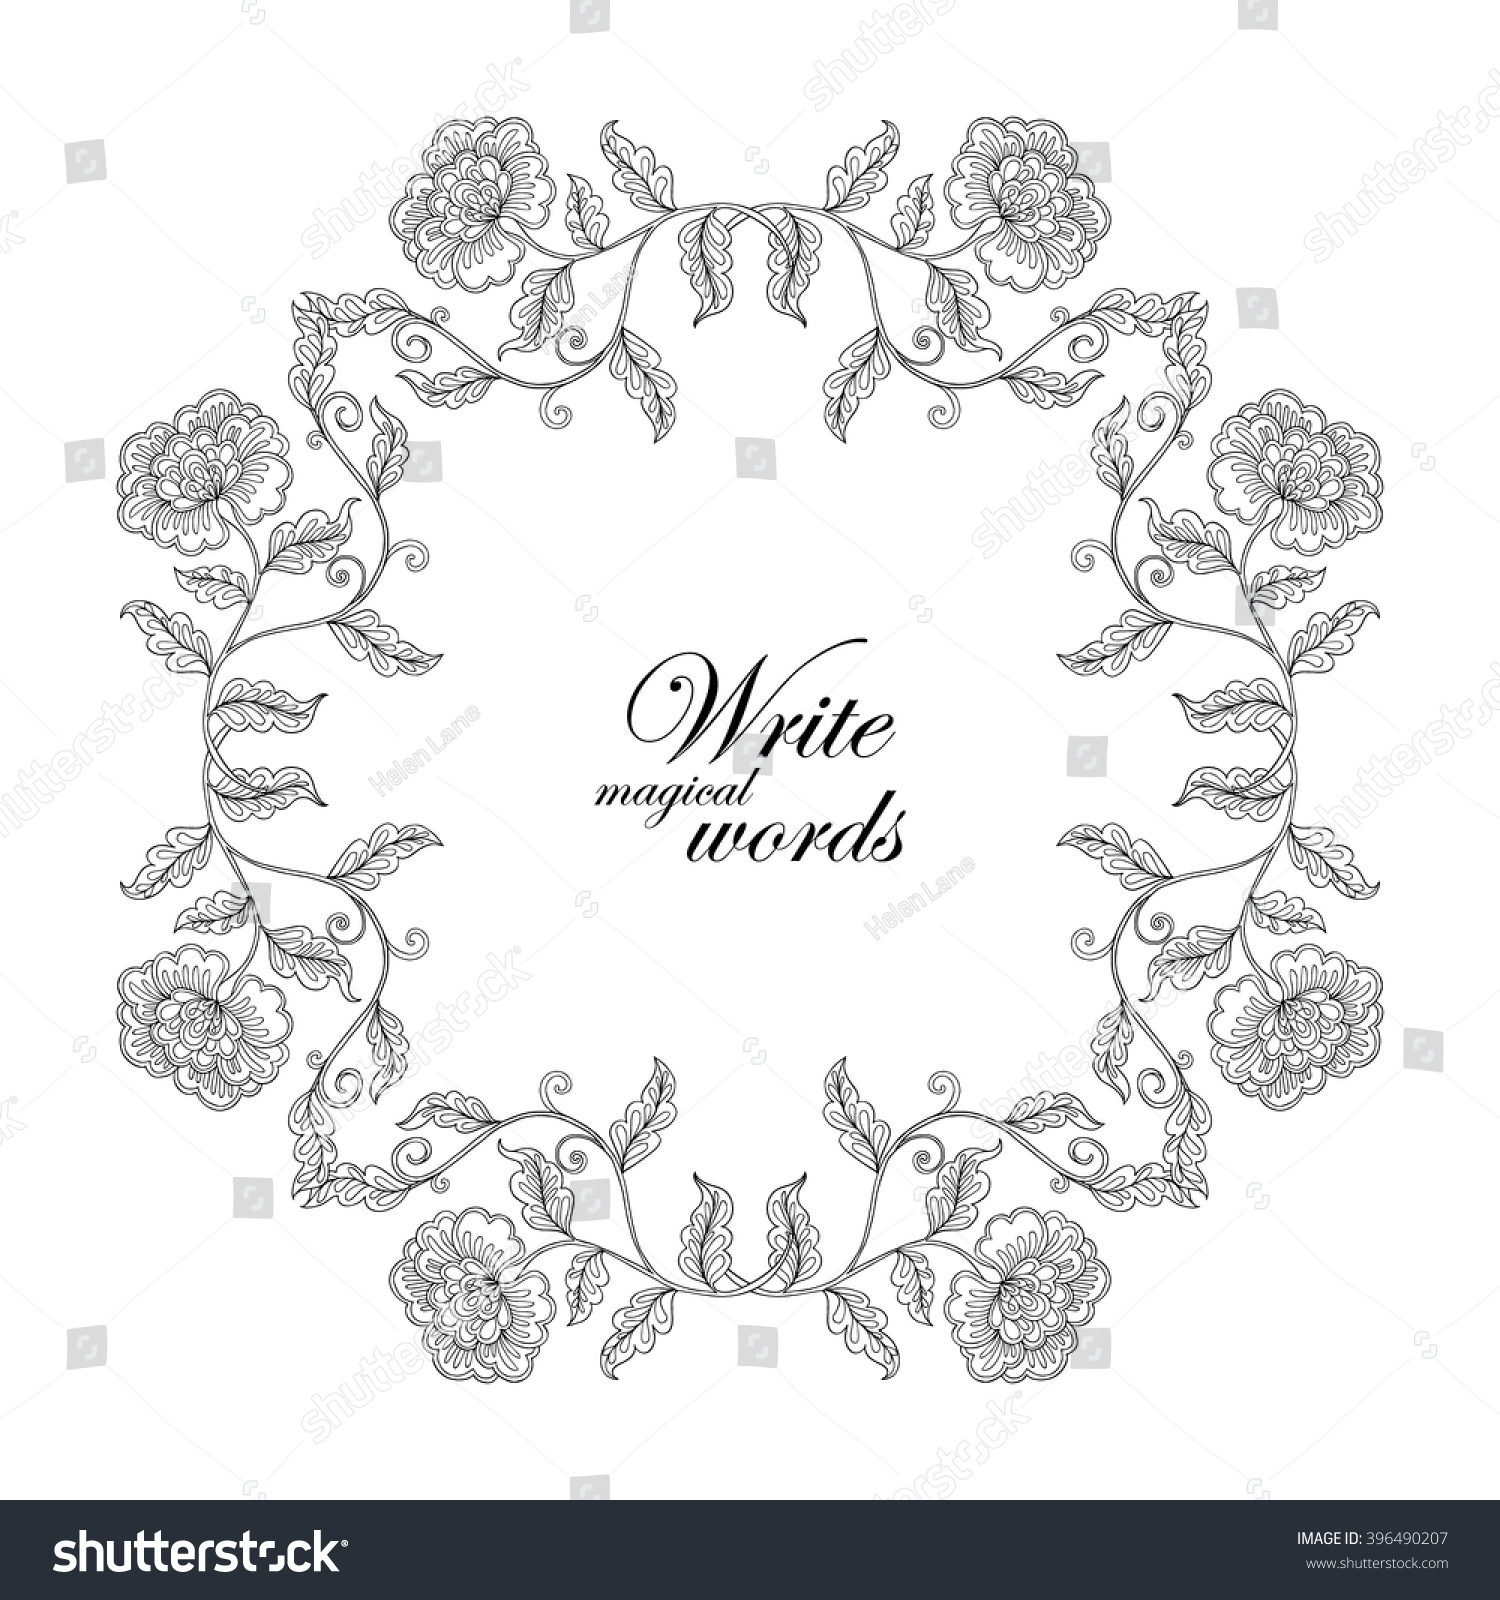 Decorative Vintage Flowers Frame Border With Space For Any Text Coloring Book Adult And Older Children Page Vector Illustration Stock